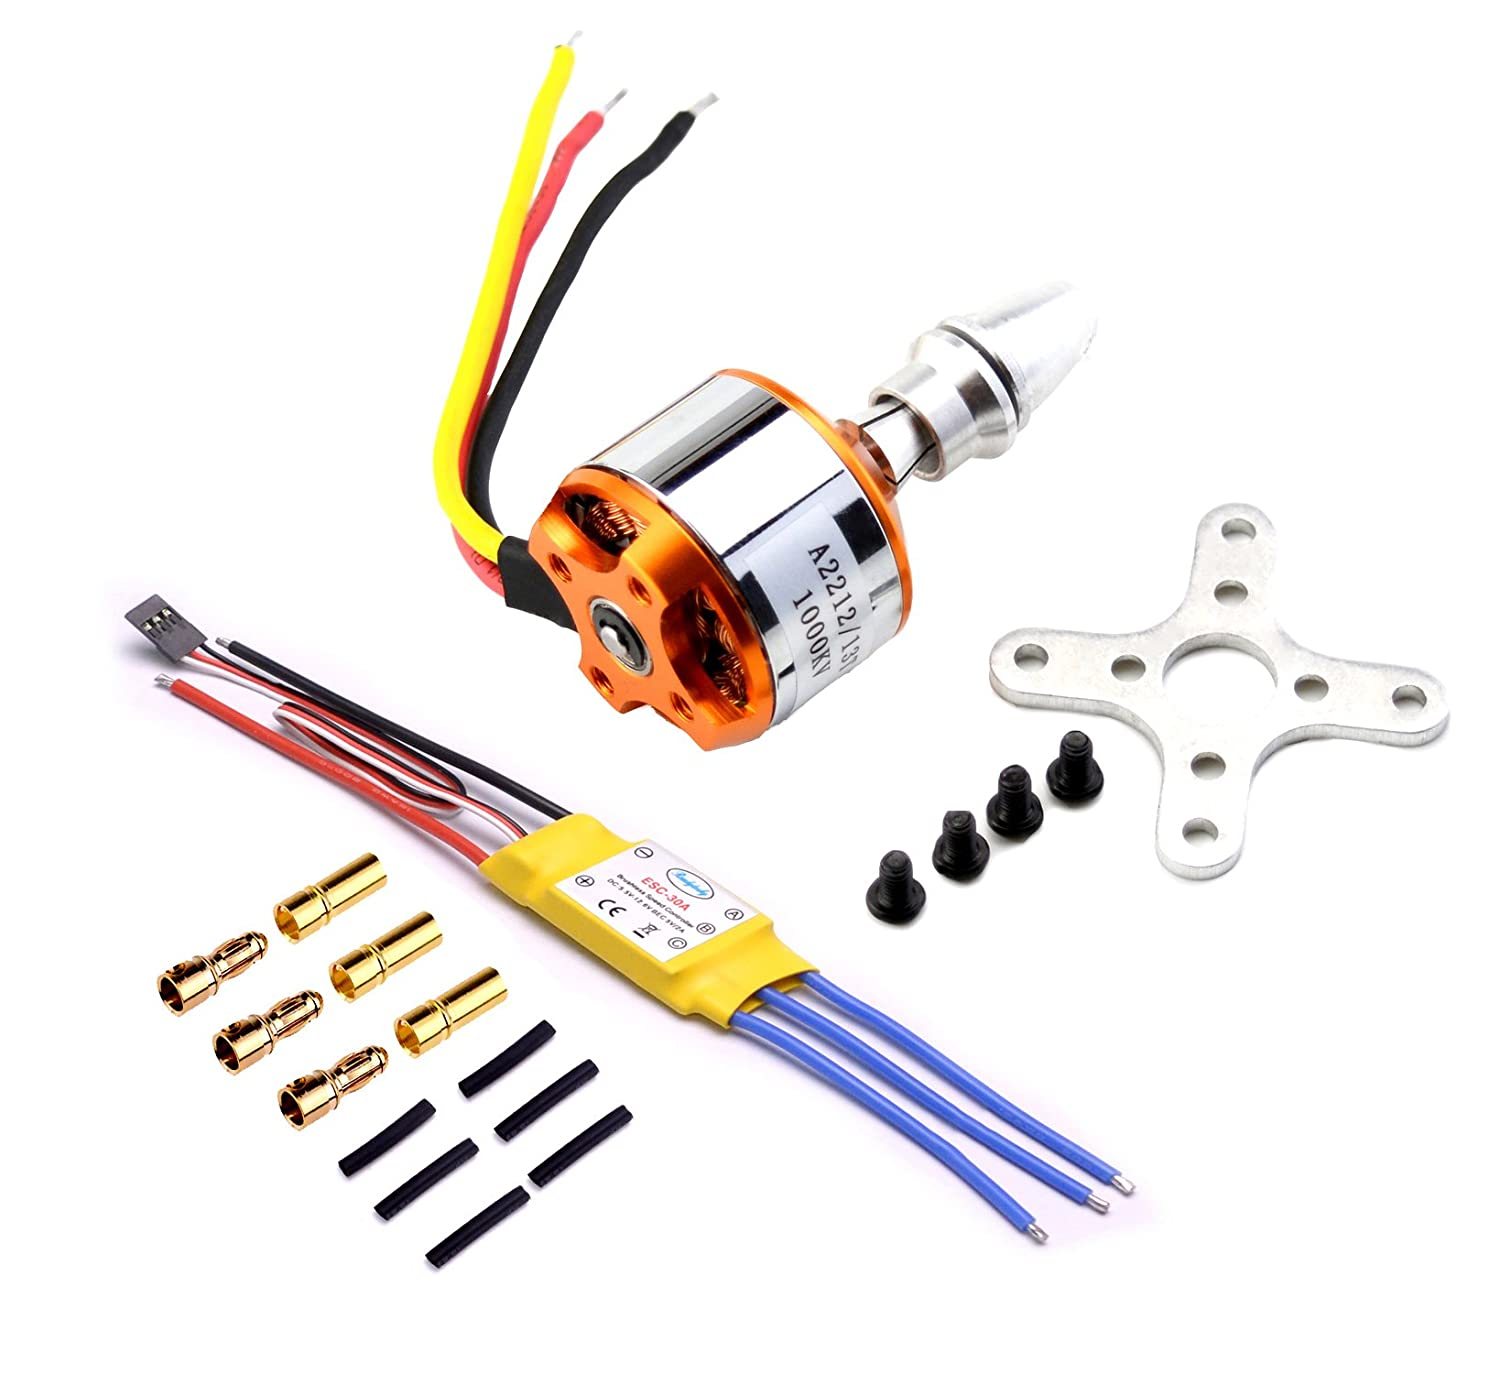 YoungRC A2212 1000KV Brushless Motor+ 30A ESC Electric Speed Controller +  Gold Bullet Banana Plugs and Heat Shrink Tubes for RC Multicopter Quadcopter